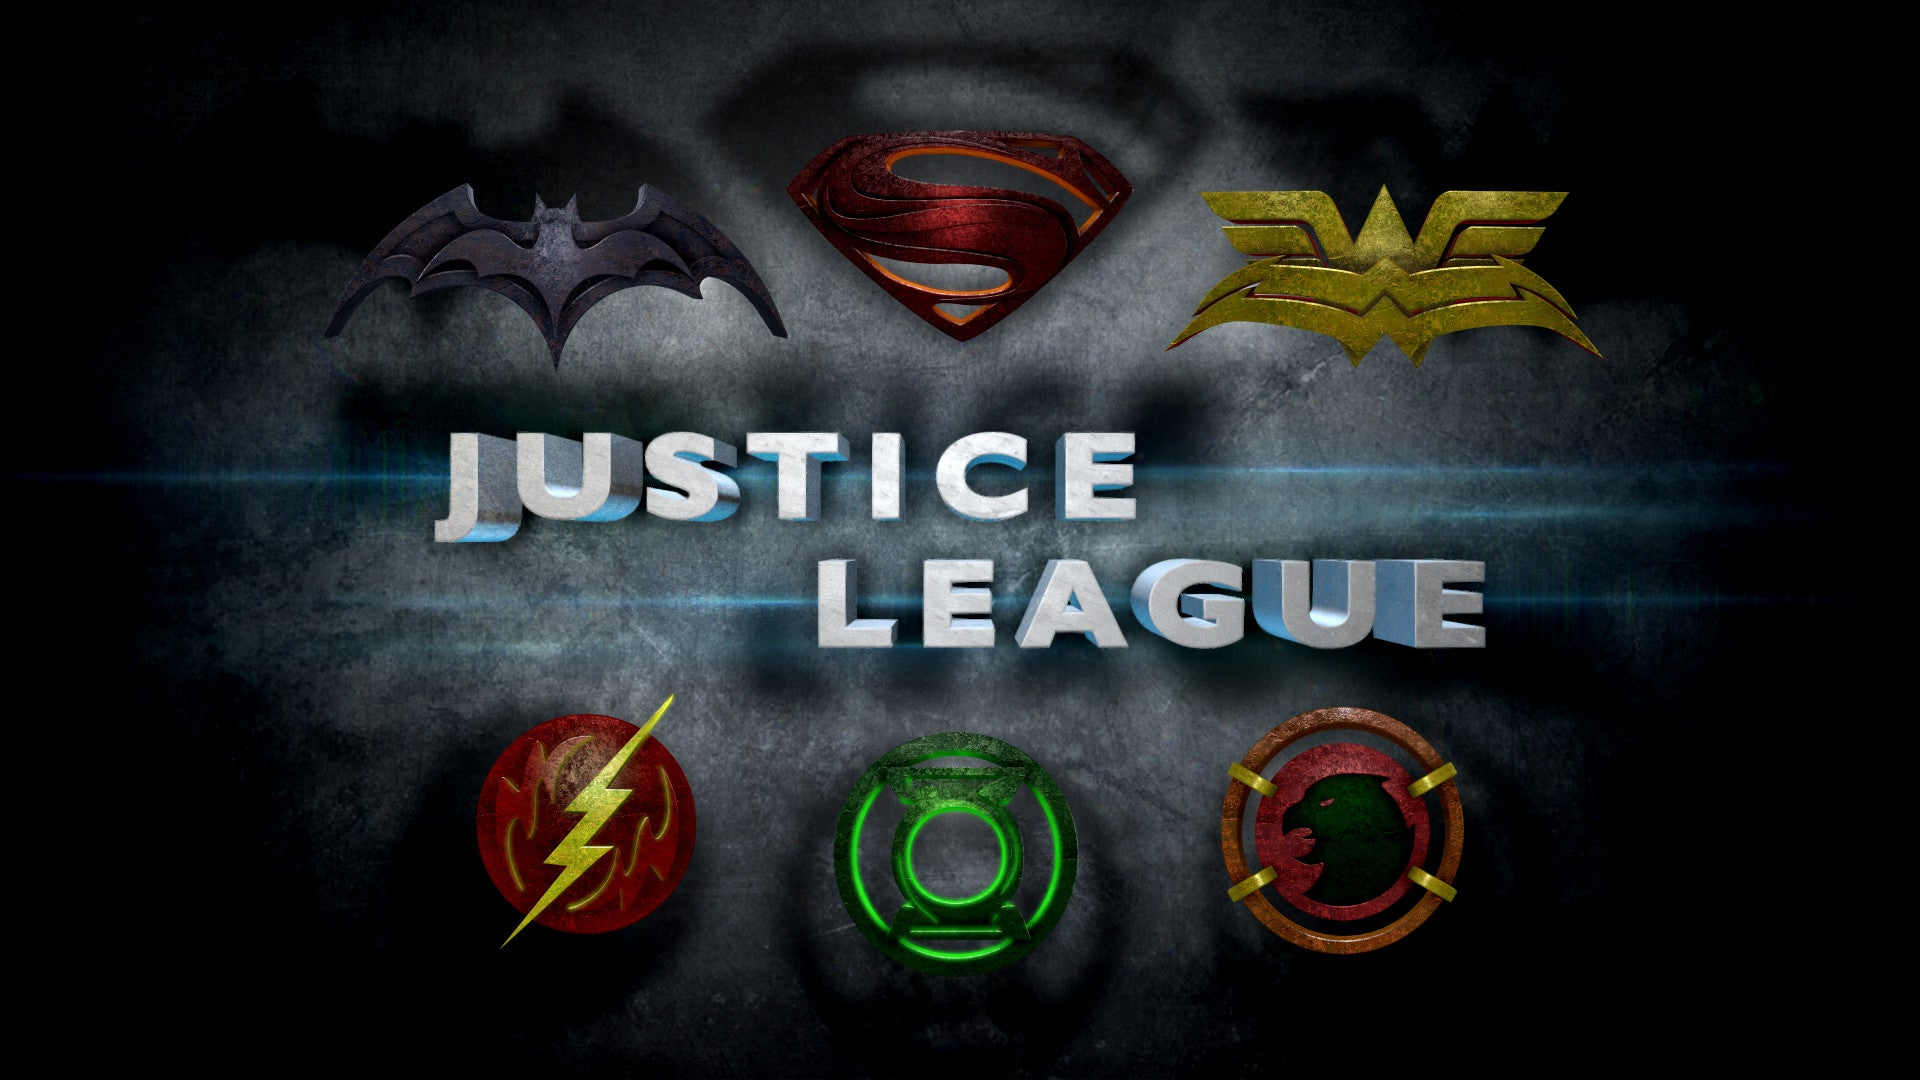 Justice League Movie Logos In the Style of Man of Steel.